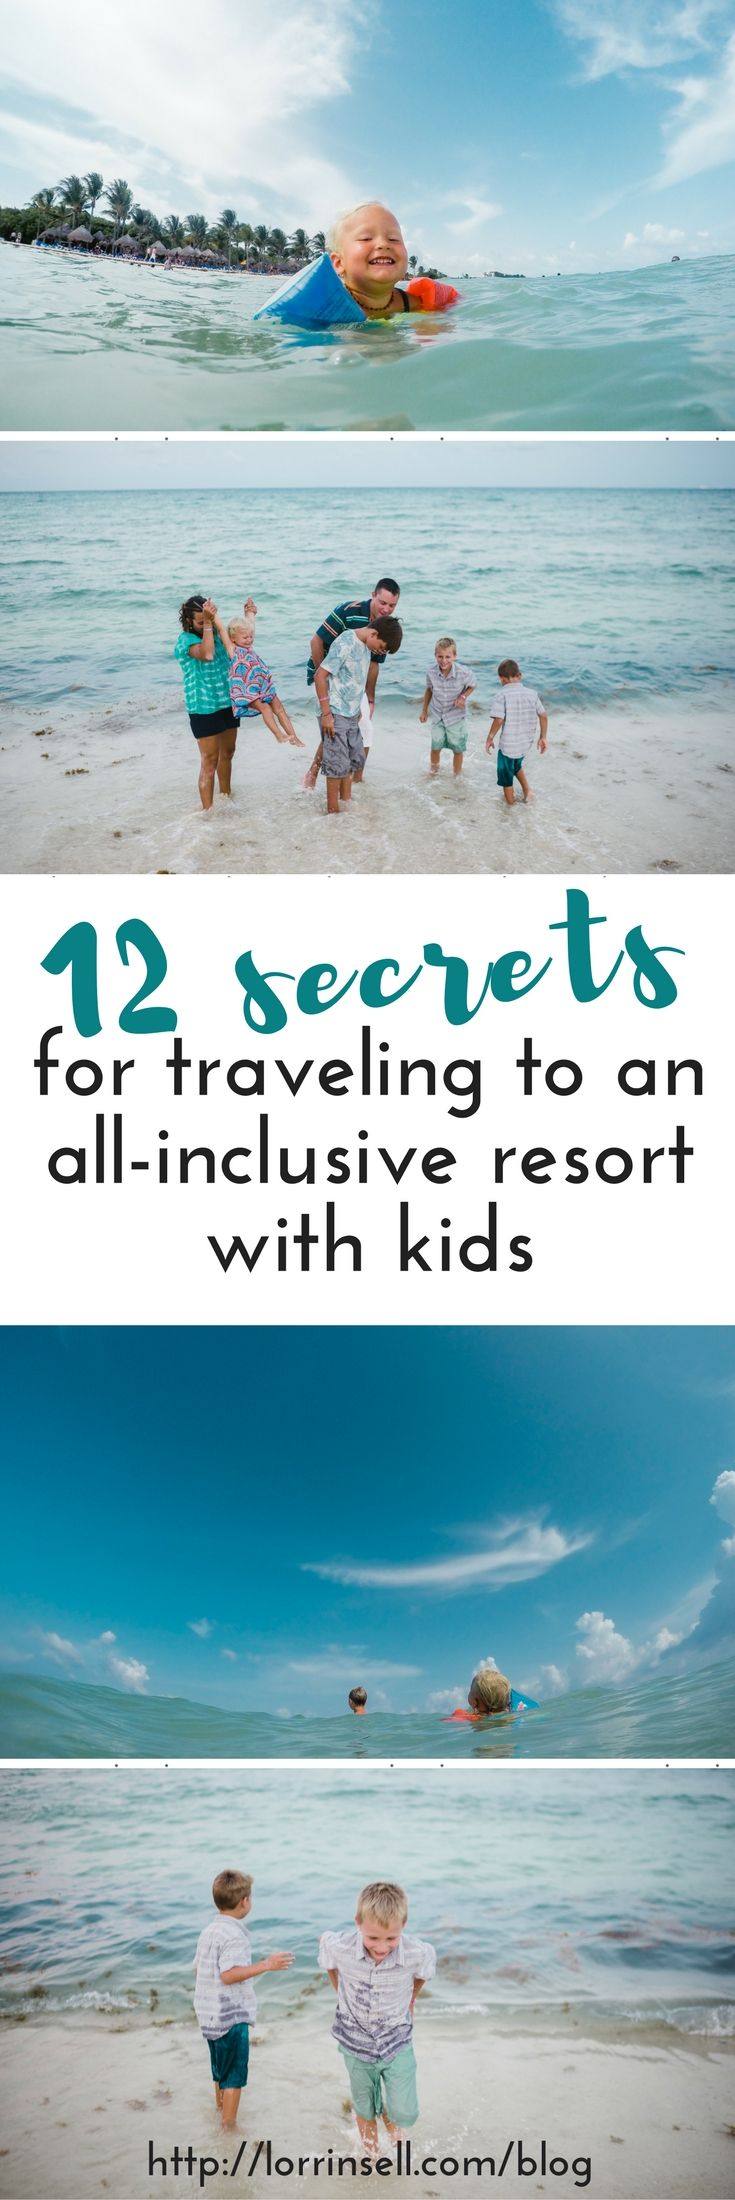 Hotel sandos cancun luxury experience resort marf travel vacation - Tips For Traveling To An All Inclusive Resort With Kids